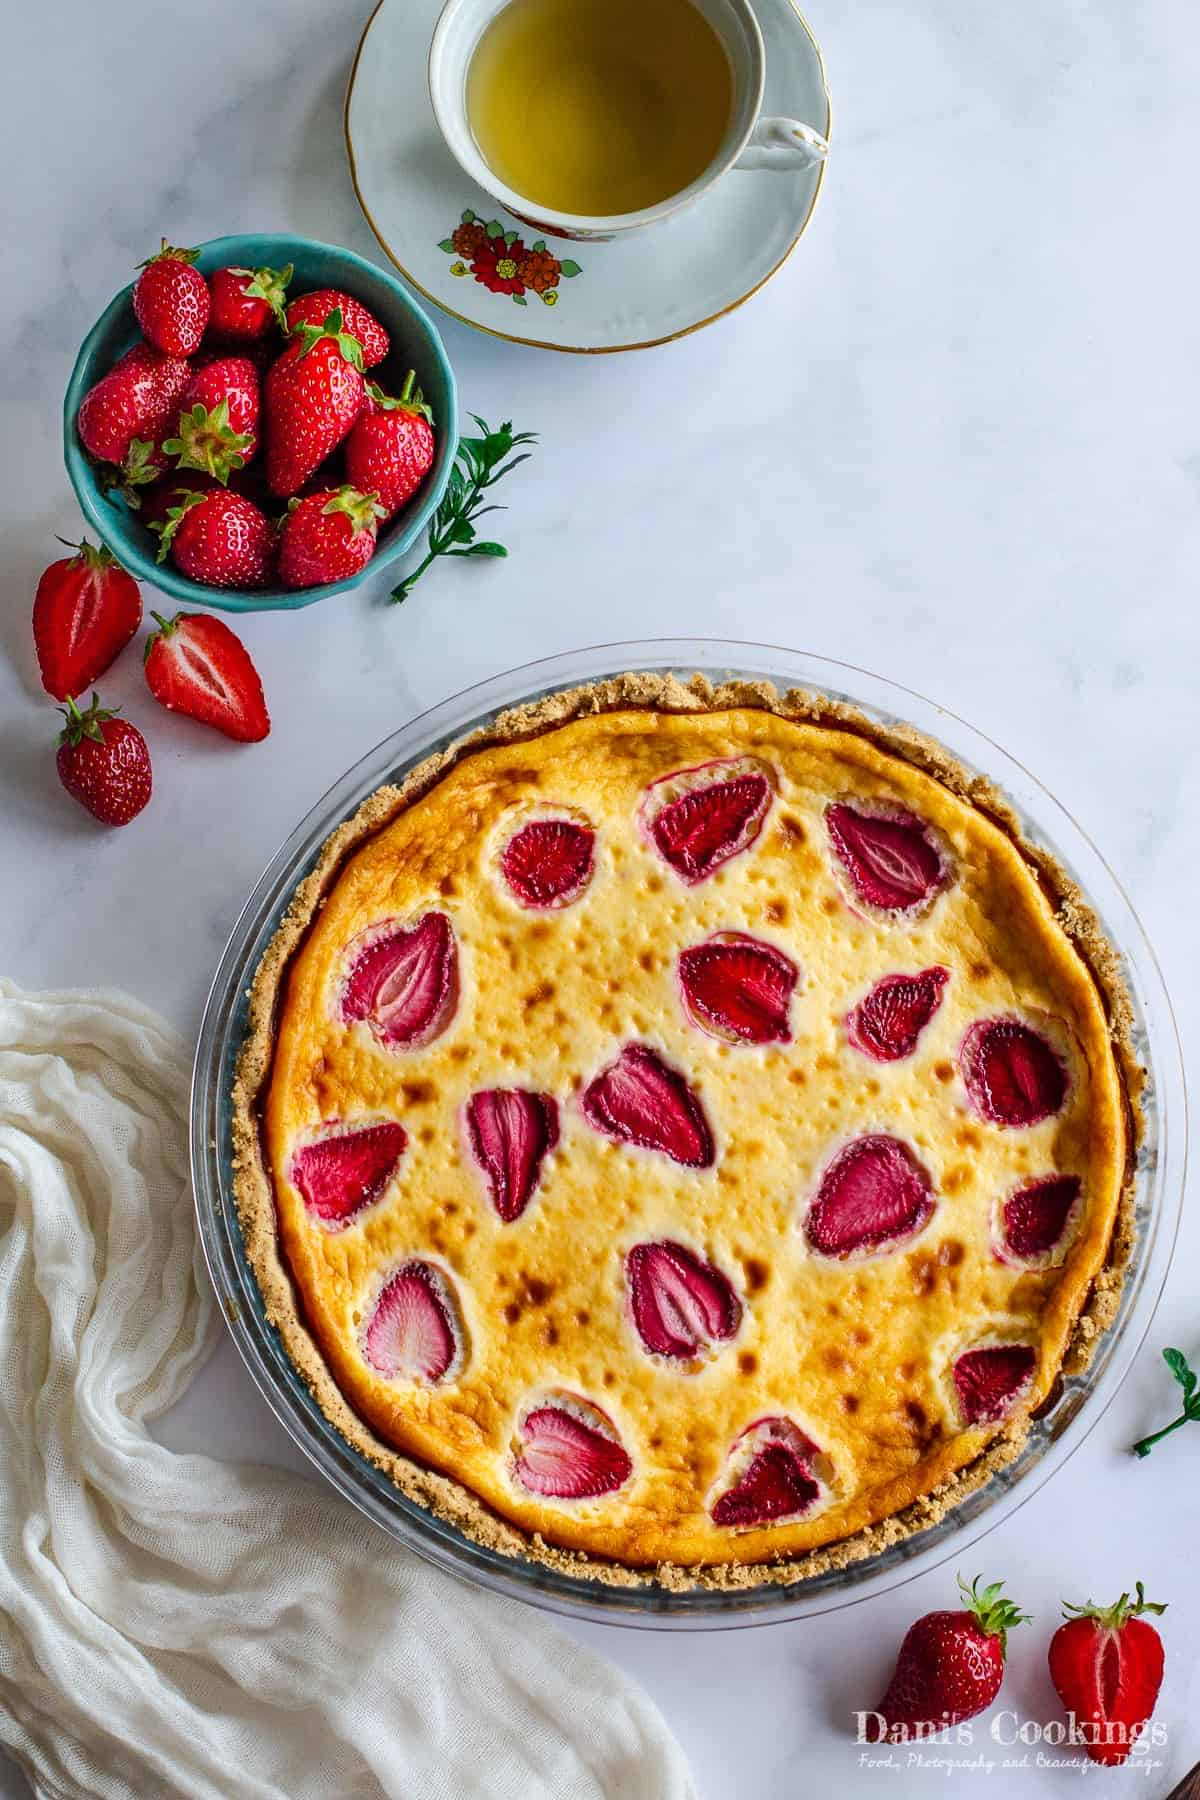 a baked tart with strawberries on a marble texture with tea and fresh strawberries aside